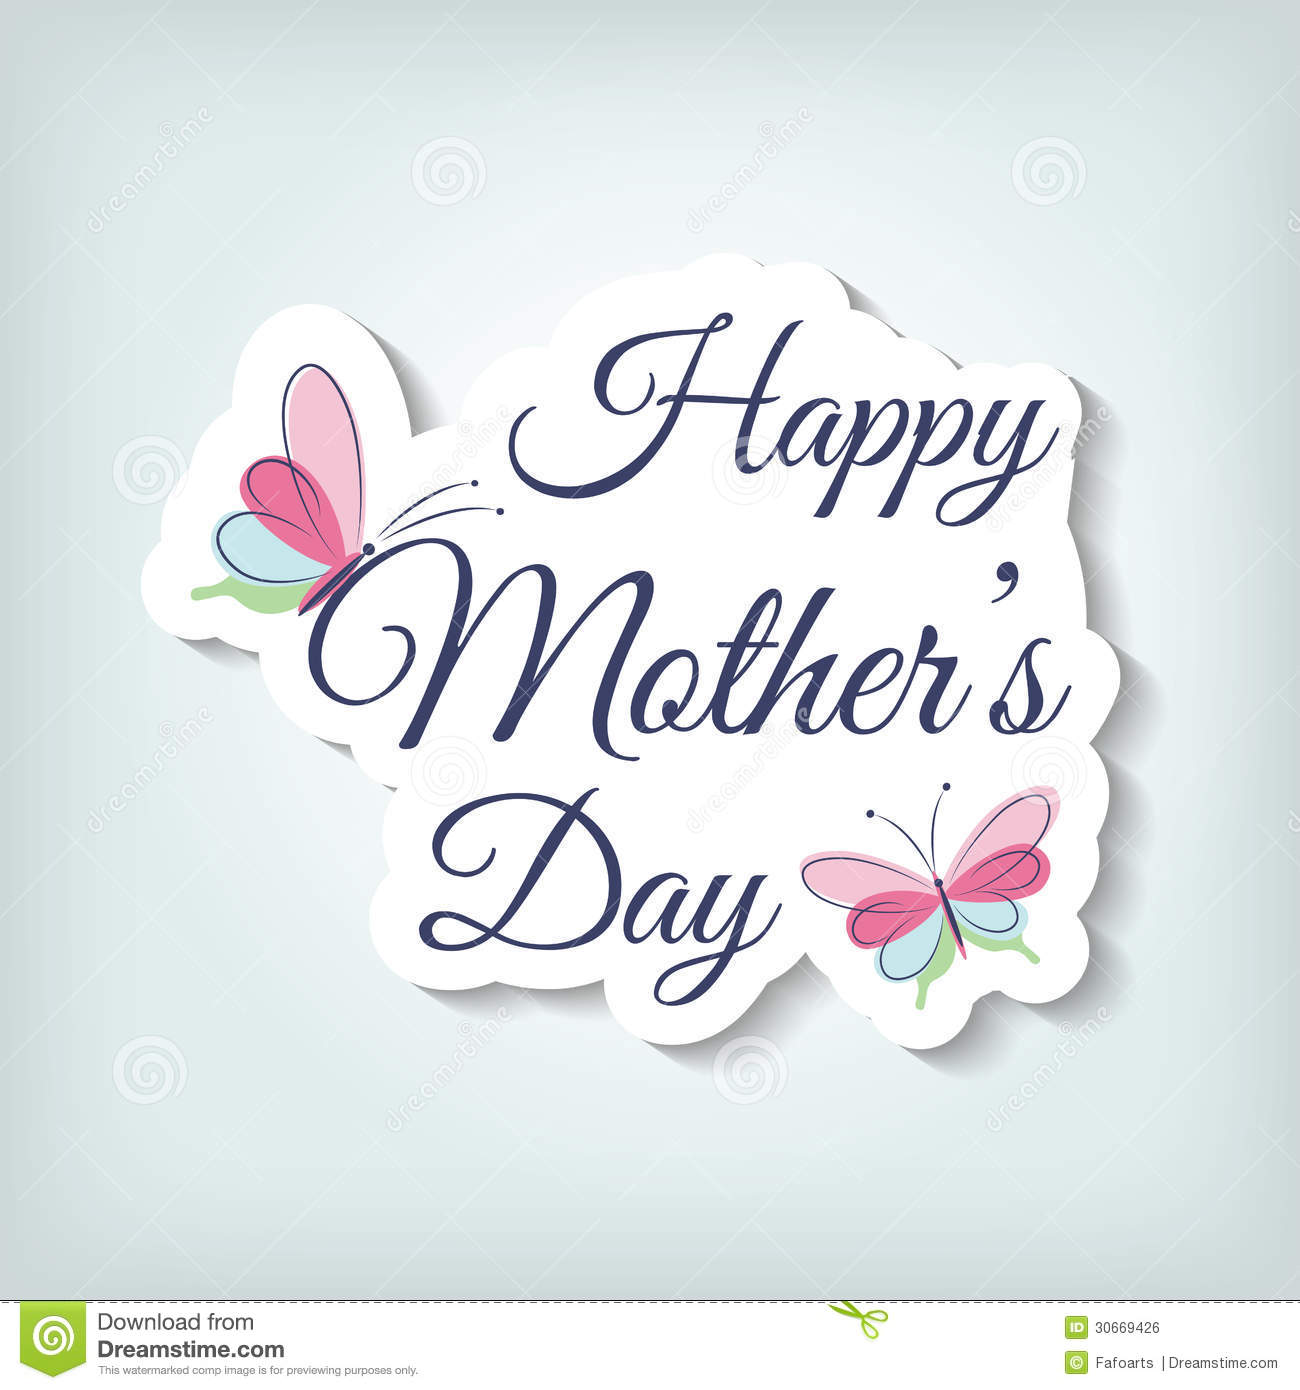 Mother 39 s day card royalty free stock image image 30669426 for Classy mothers day cards